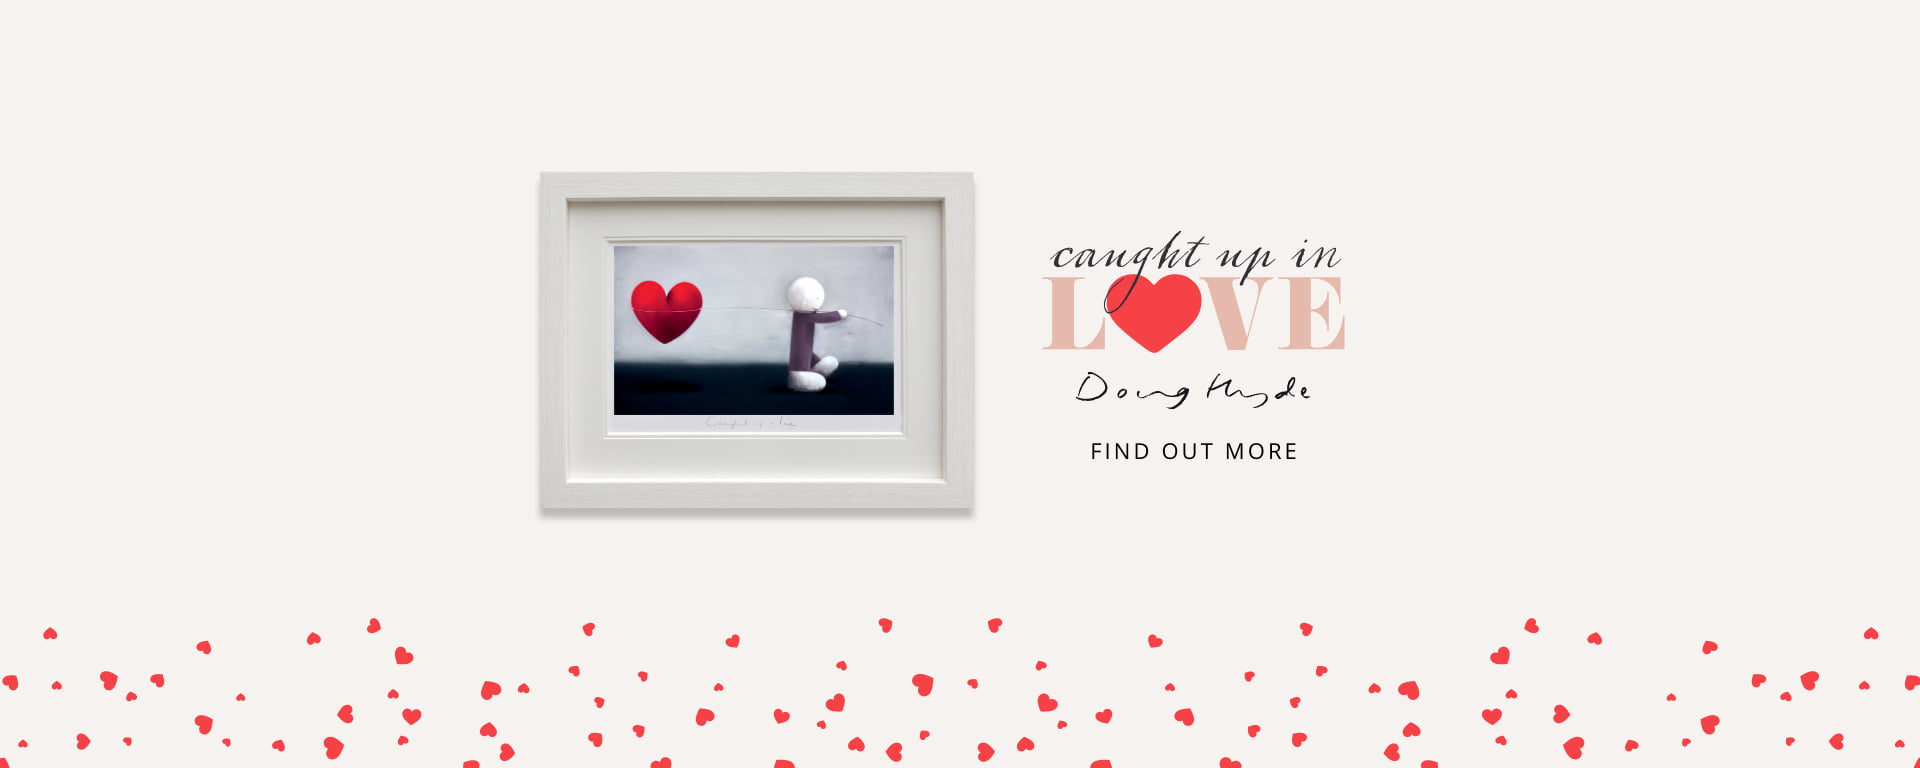 Doug Hyde | Caught up in Love